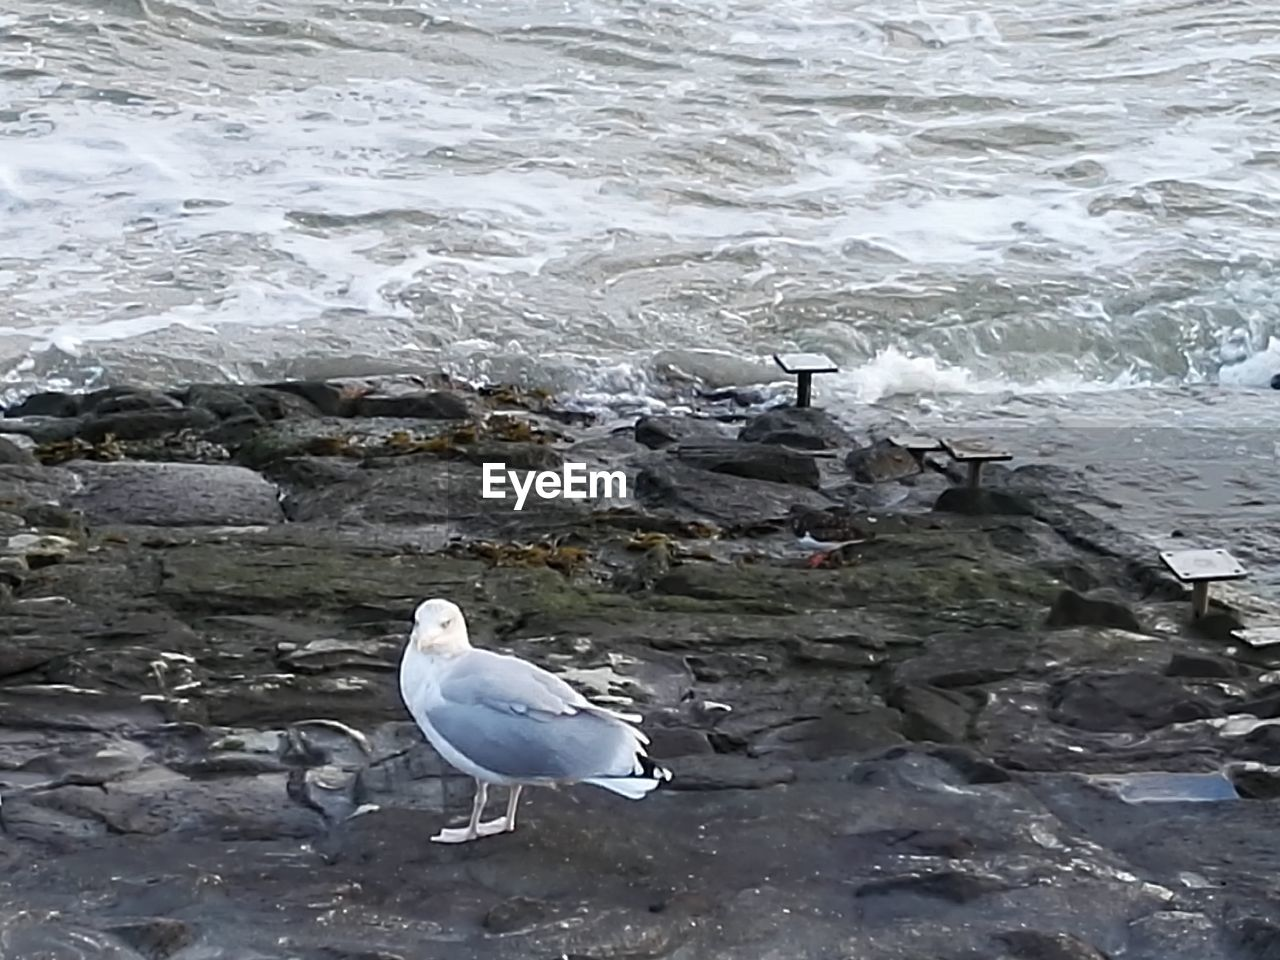 water, vertebrate, animal themes, bird, animal, animals in the wild, animal wildlife, seagull, sea, beach, motion, rock, perching, white color, nature, one animal, day, rock - object, no people, outdoors, flowing water